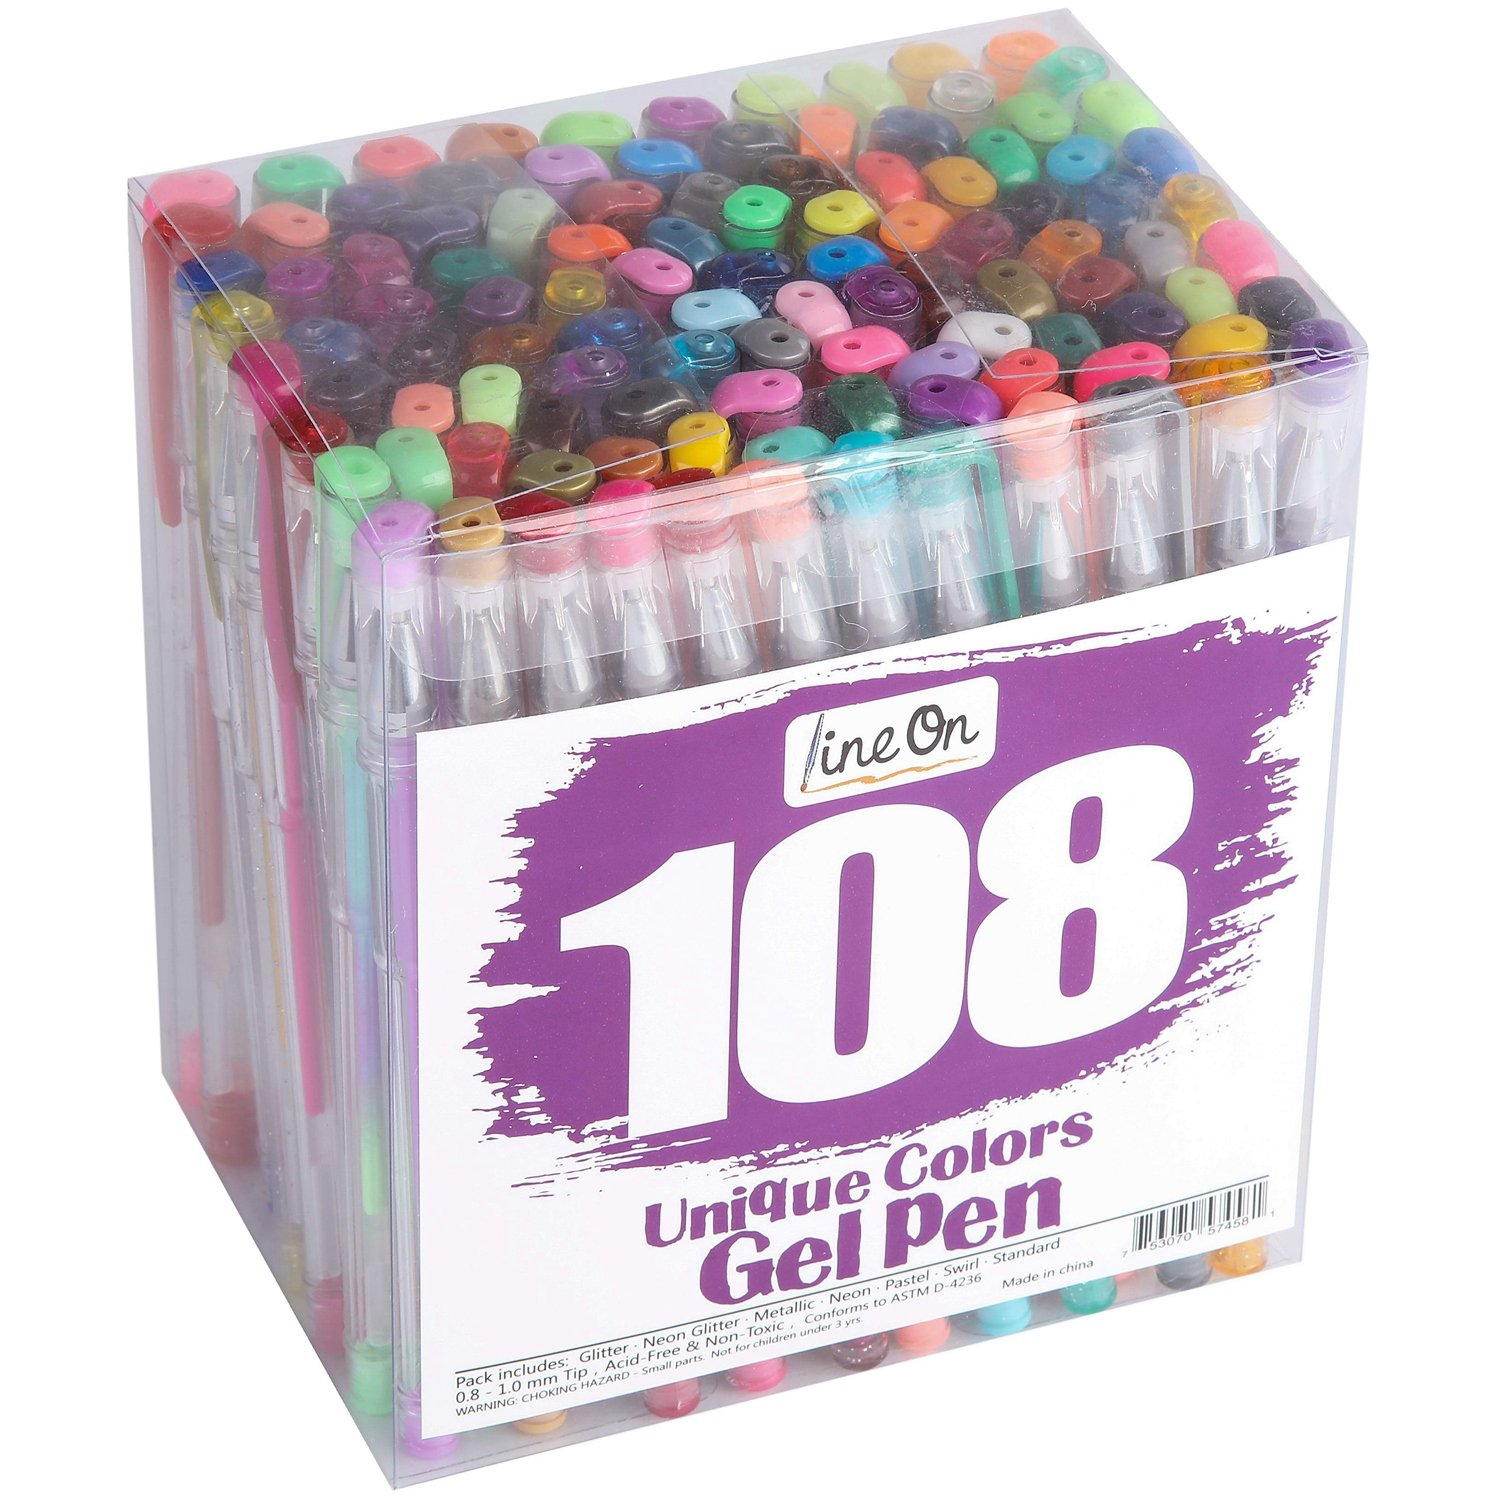 108 Gel Pen Set For Adult Coloring Books 1699 From Amazon Reg